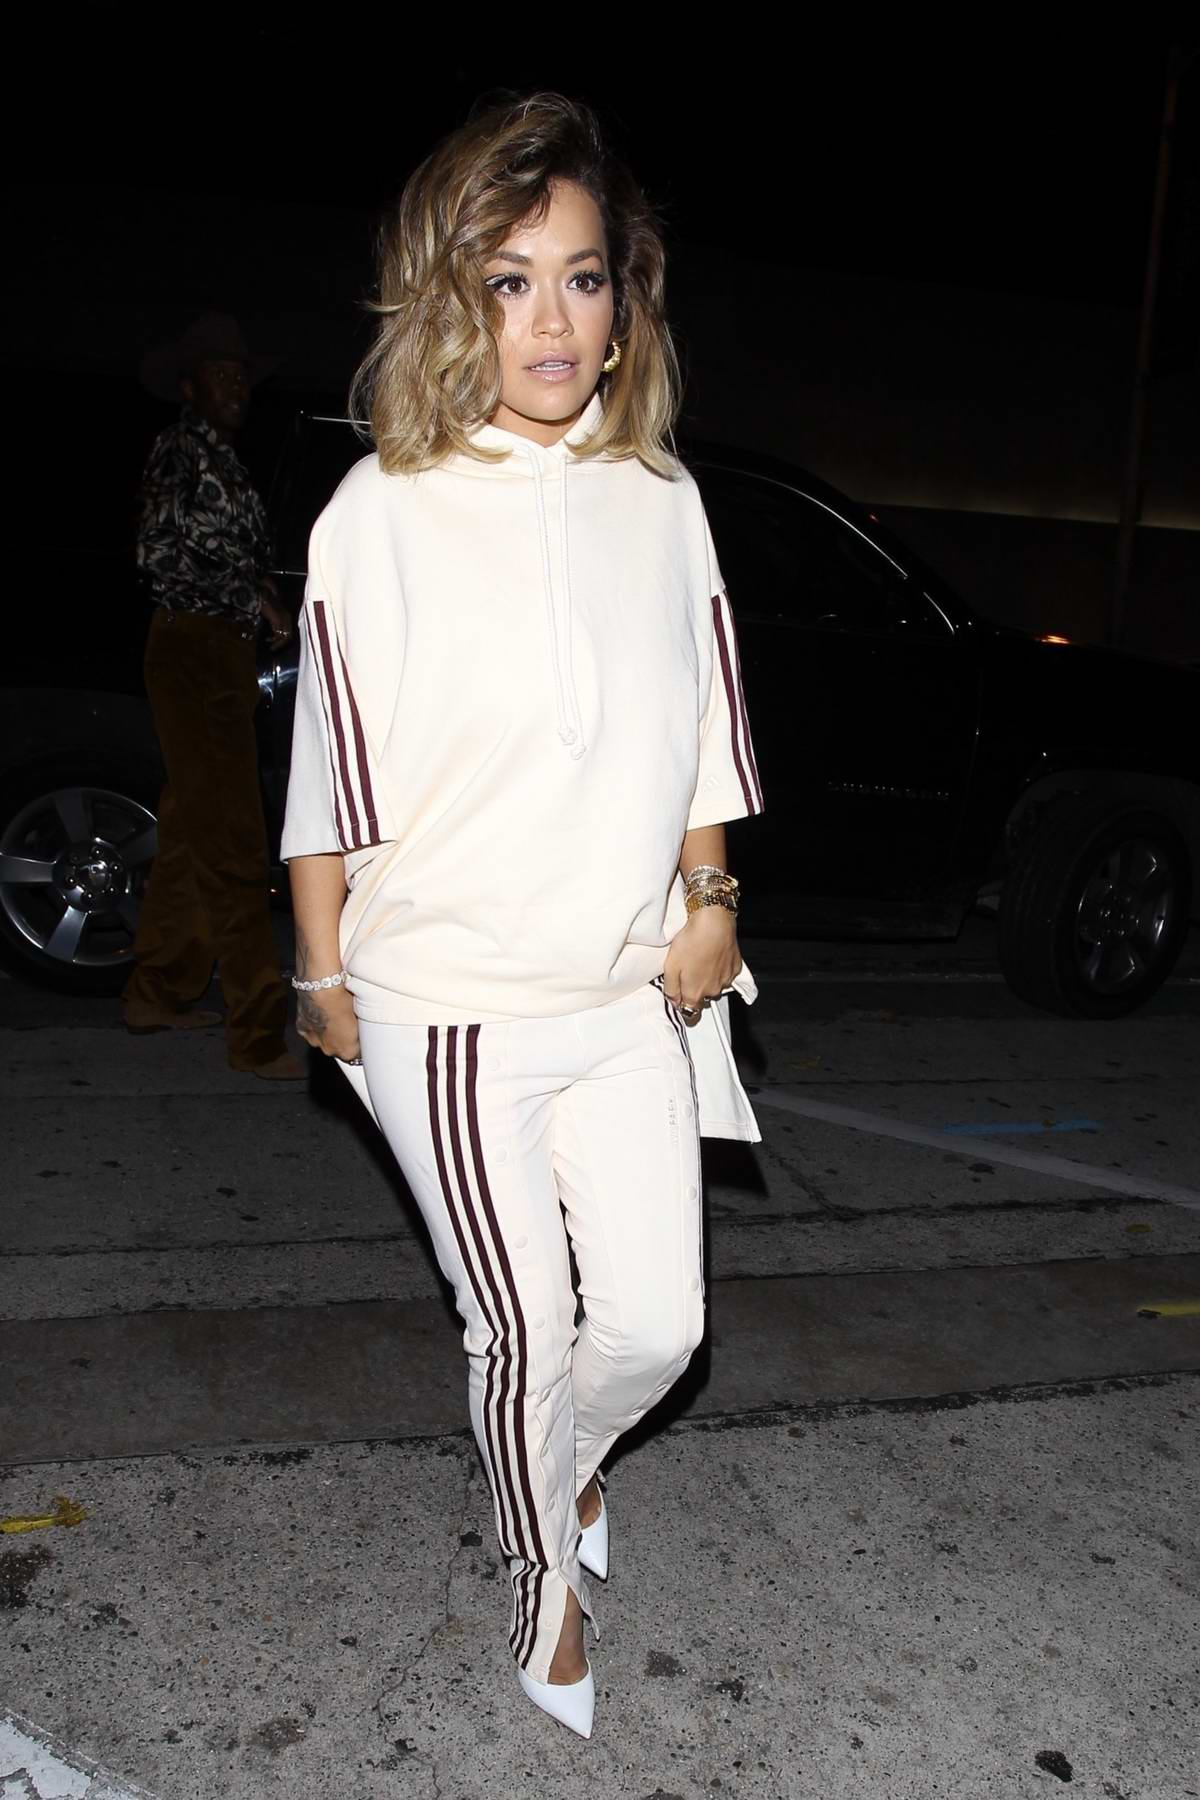 Rita Ora opts for all-white during a night out at Craig's in West Hollywood, California